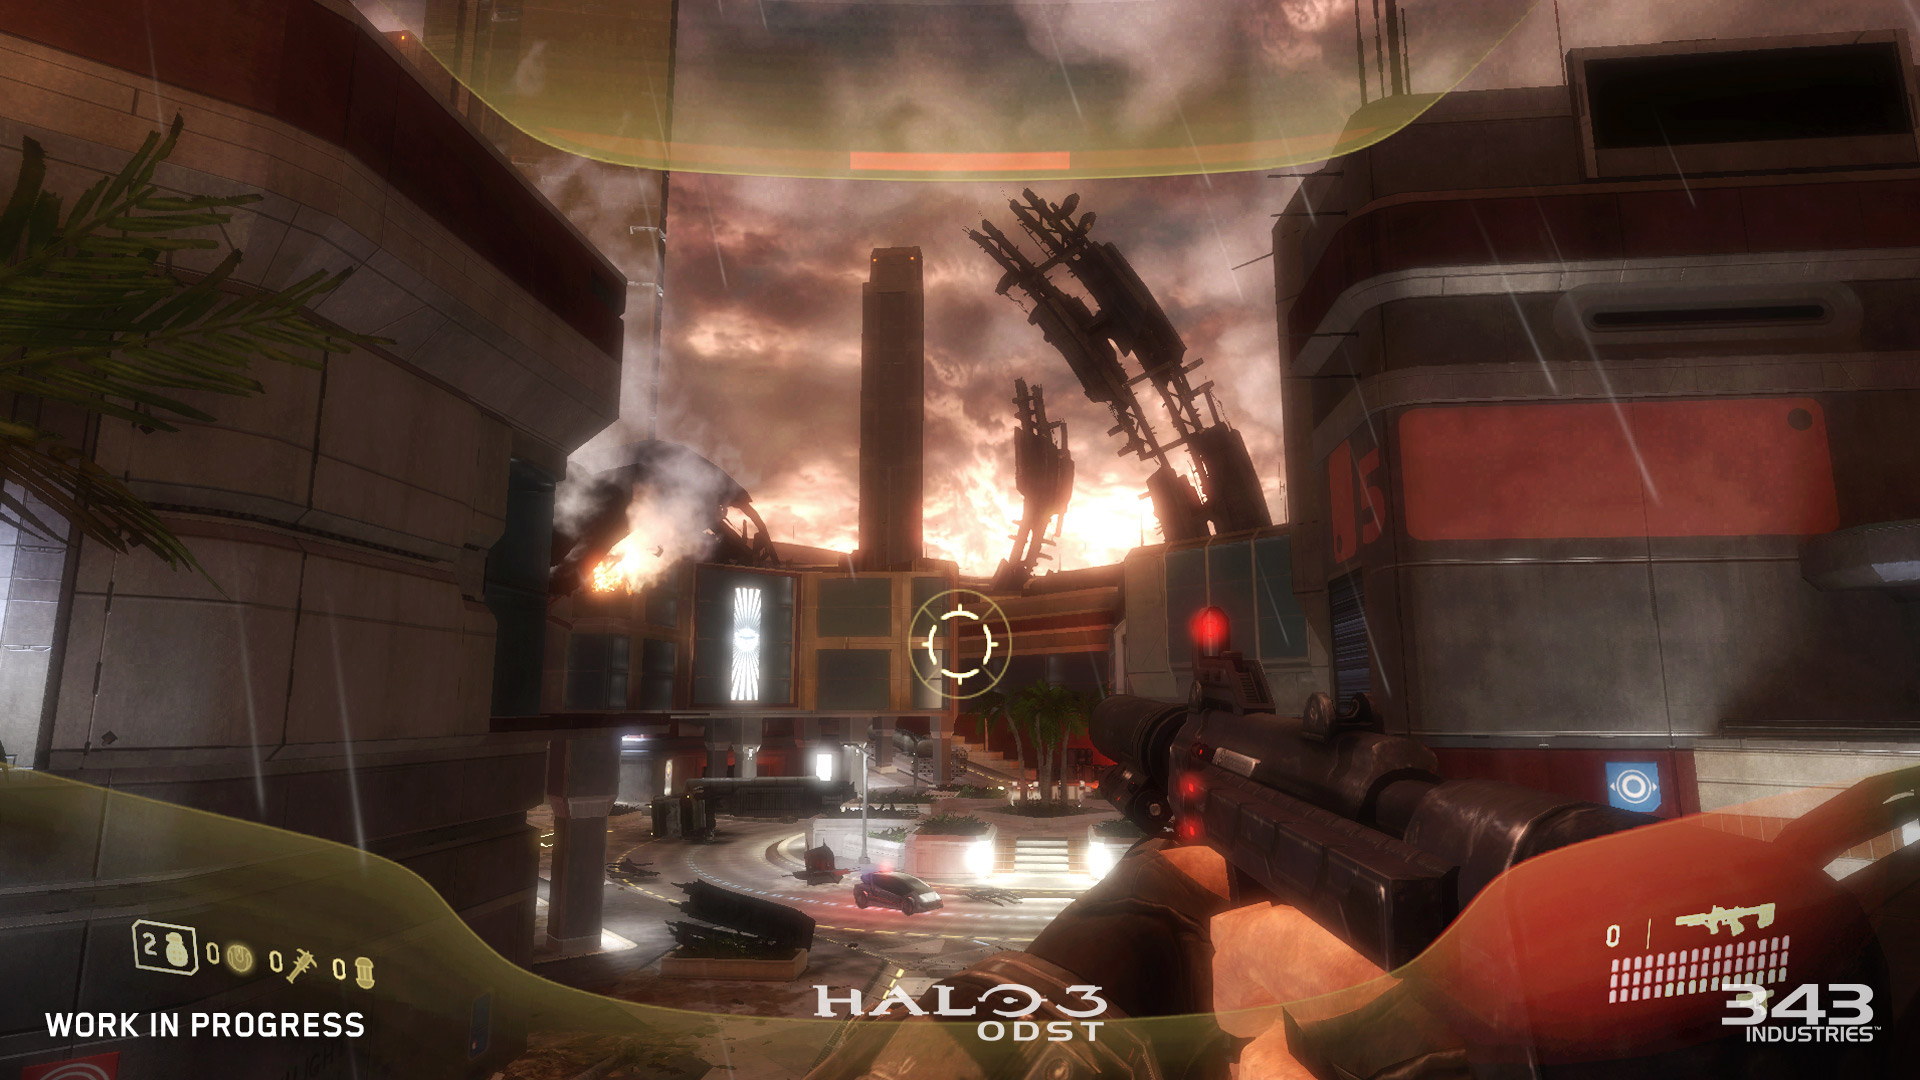 halo-the-master-chief-collection-odst-plaza-57e9952a83574ef8b87f5d19df5150ee